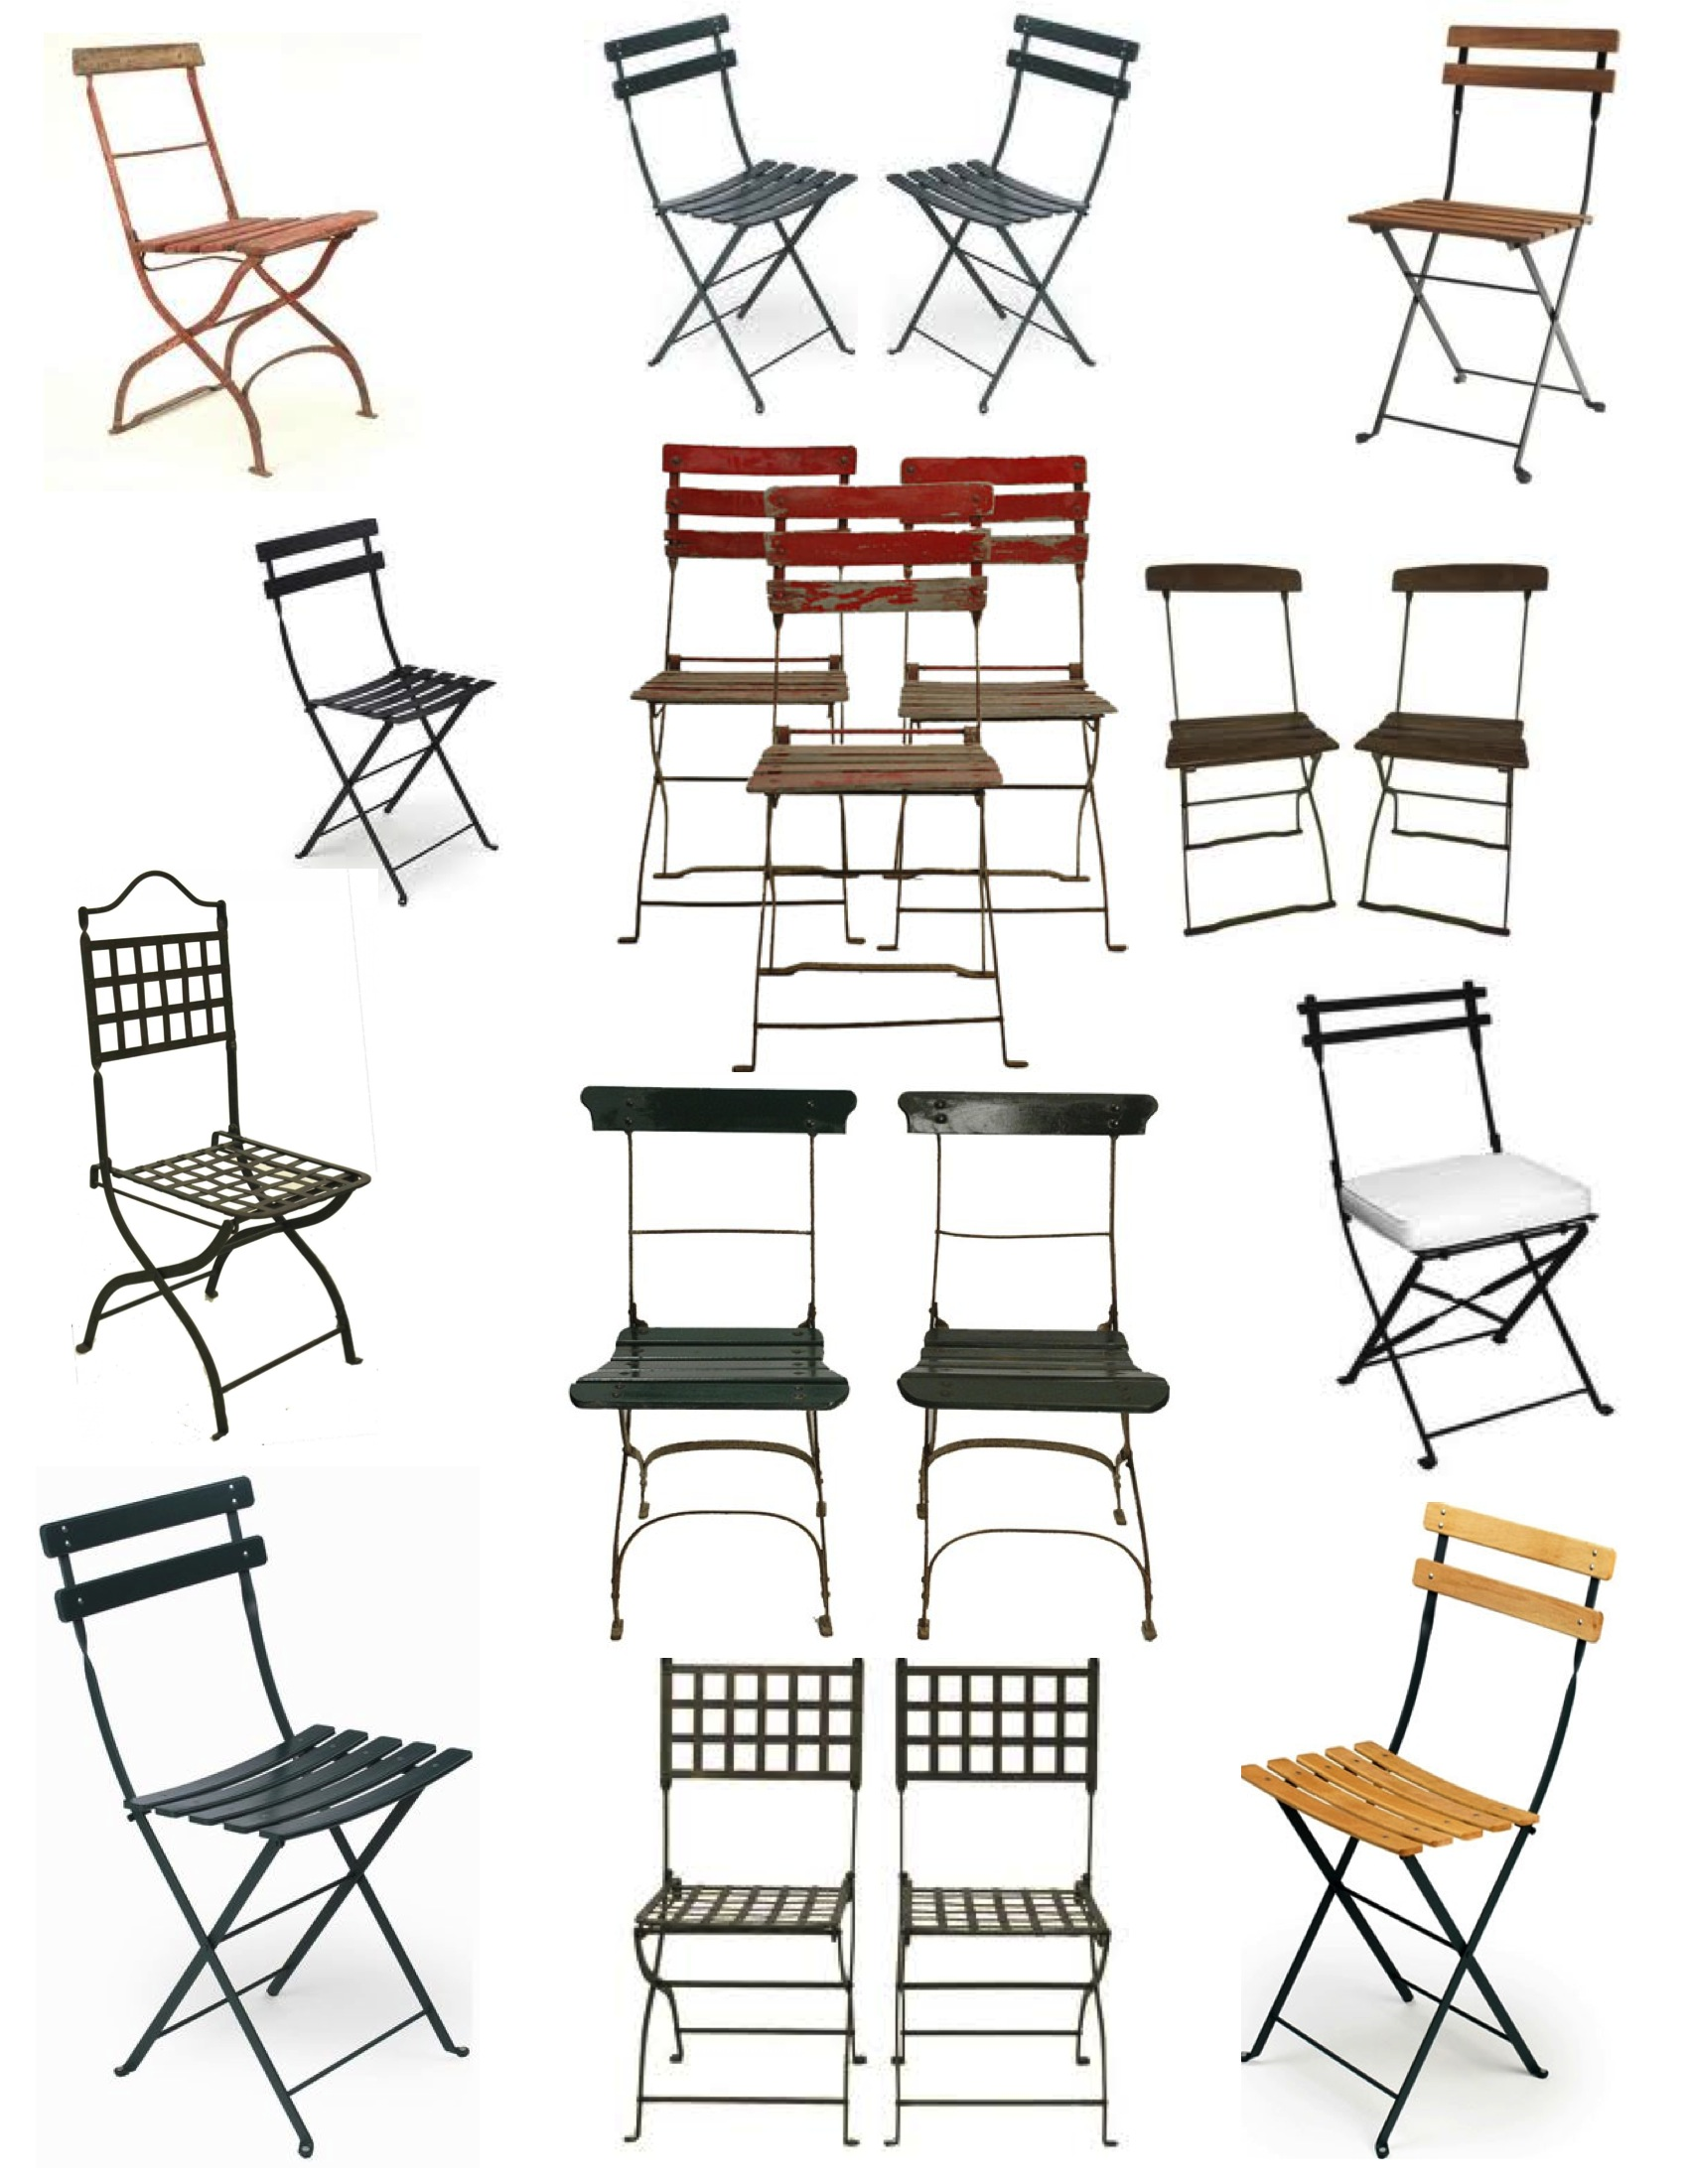 Marvelous The Charm Of The French Folding Chair House Appeal Caraccident5 Cool Chair Designs And Ideas Caraccident5Info